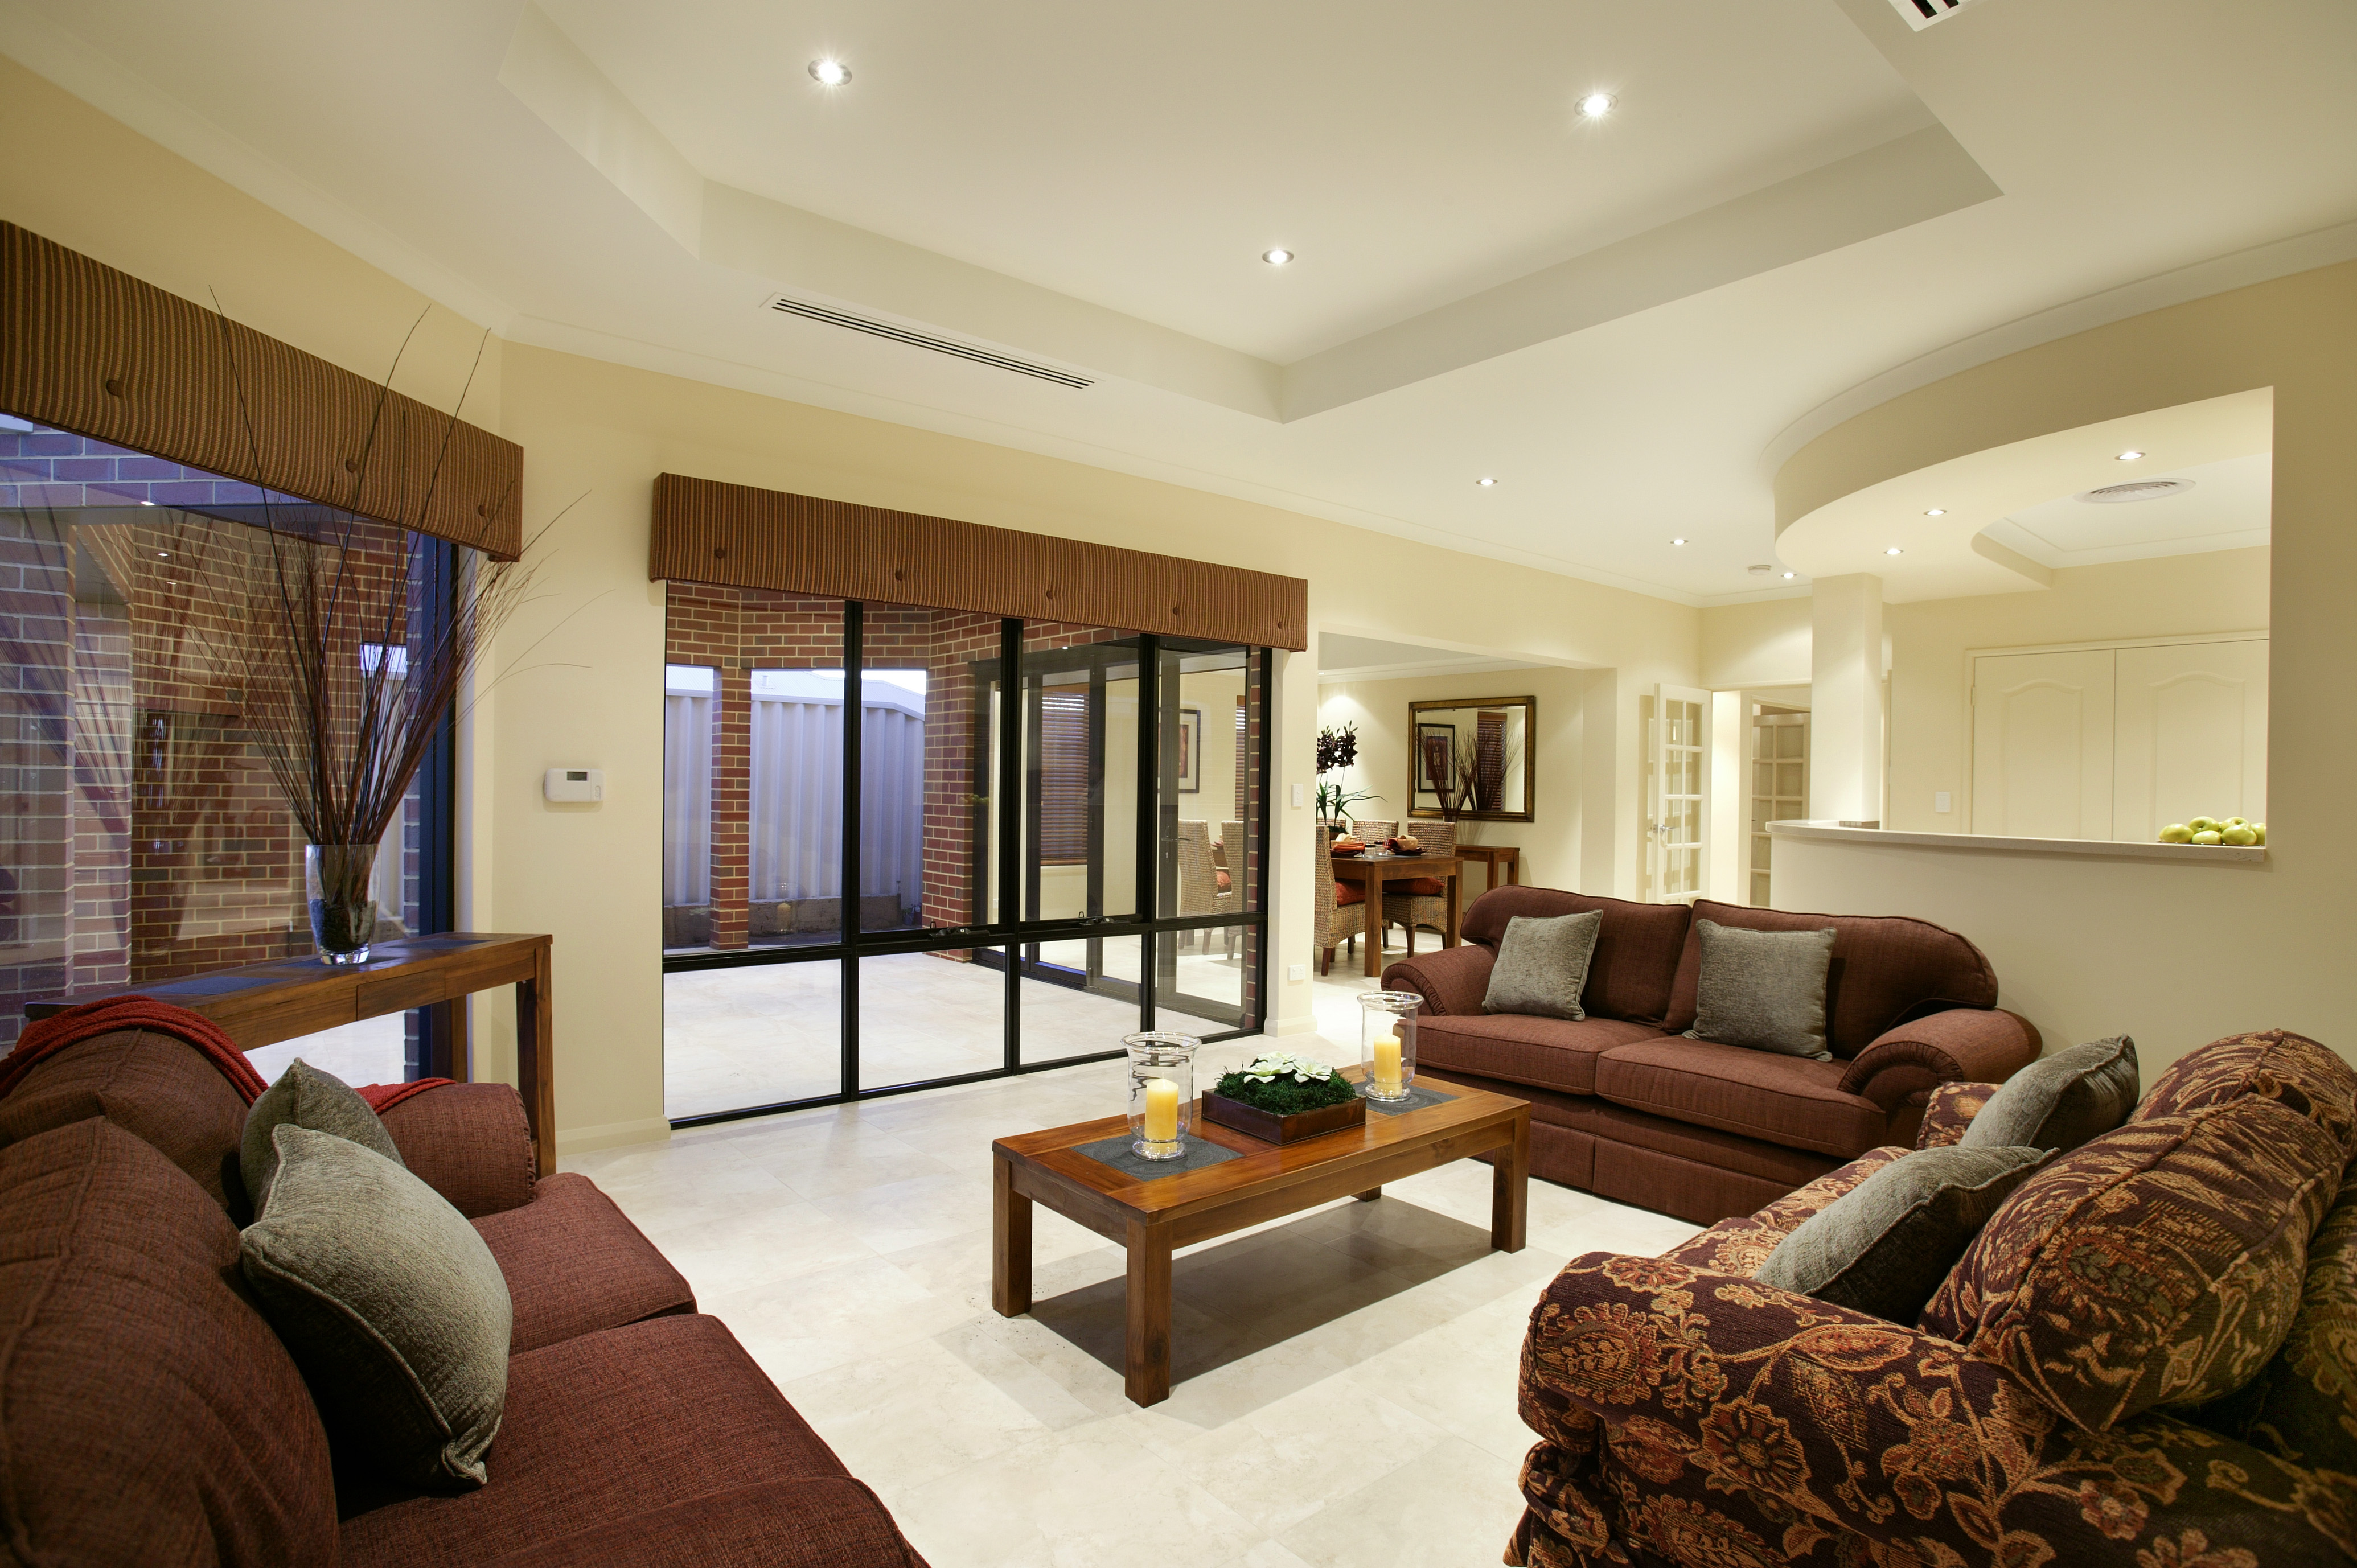 Interior design of the house Interior design of the house LZVHICI